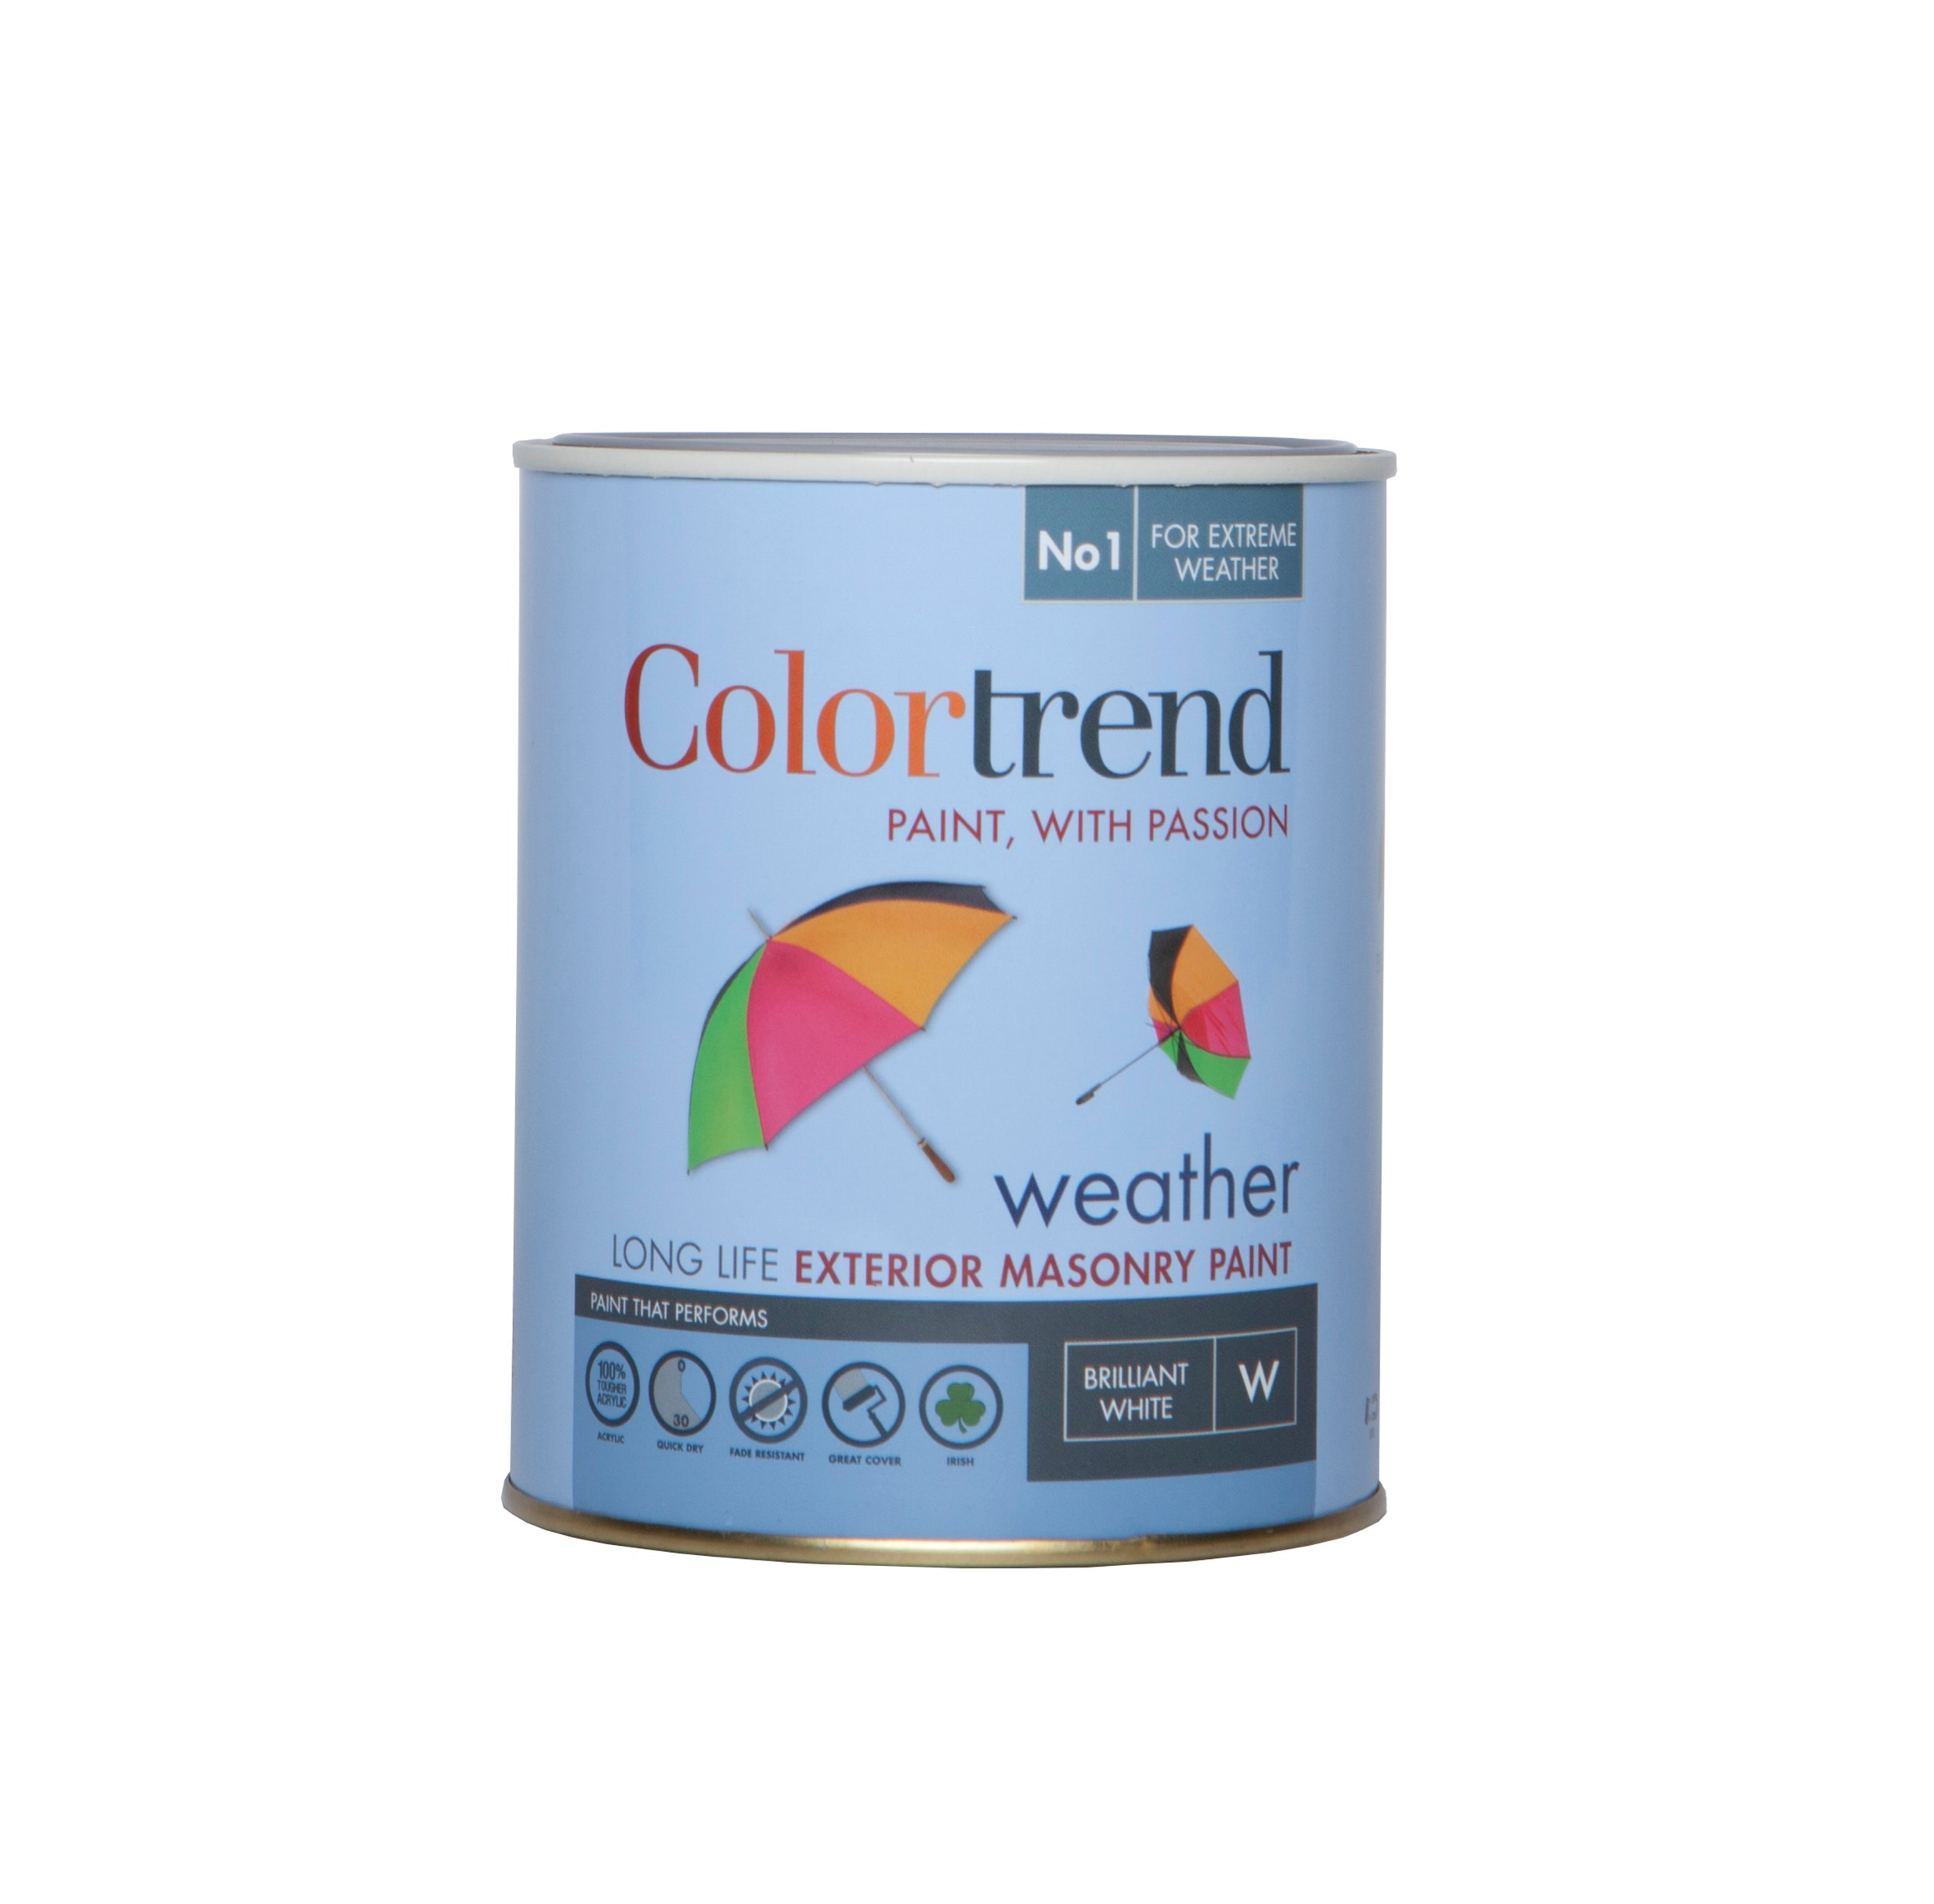 Colortrend  Weather Exterior Masonry Paint Pure Brilliant White - 1 Litre